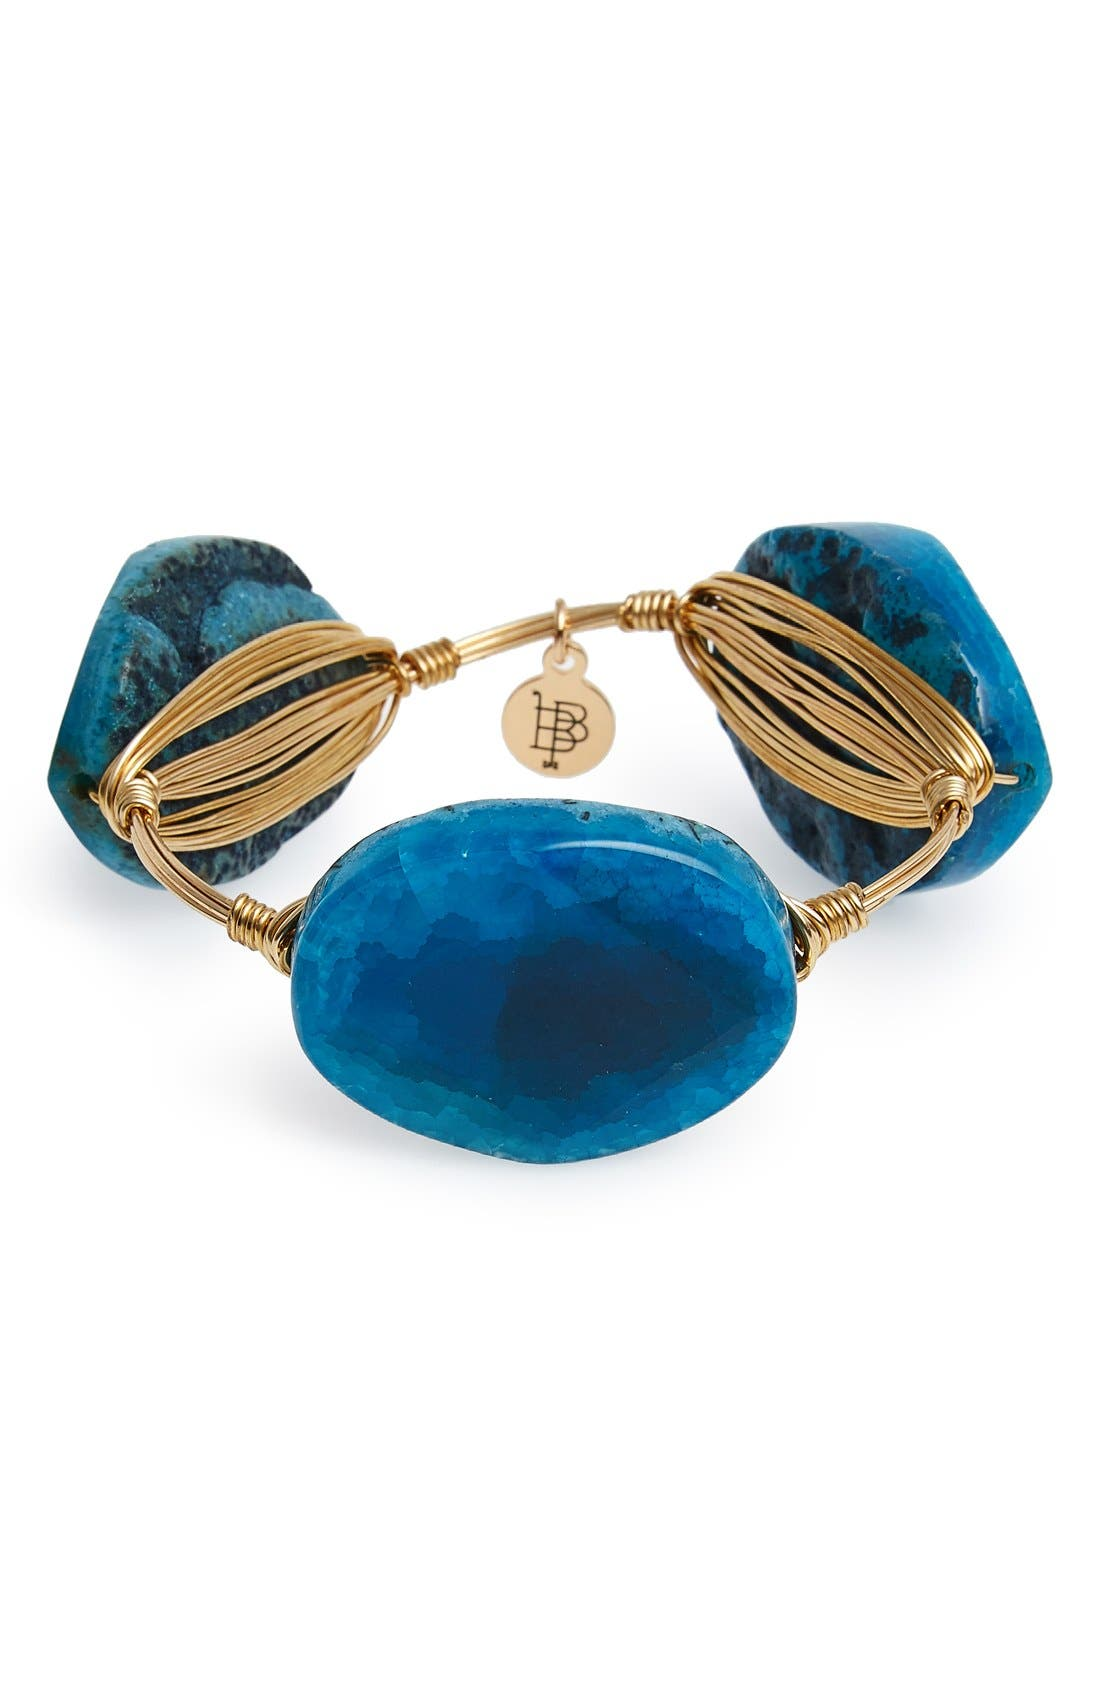 Main Image - Bourbon and Boweties Dyed Agate Bracelet